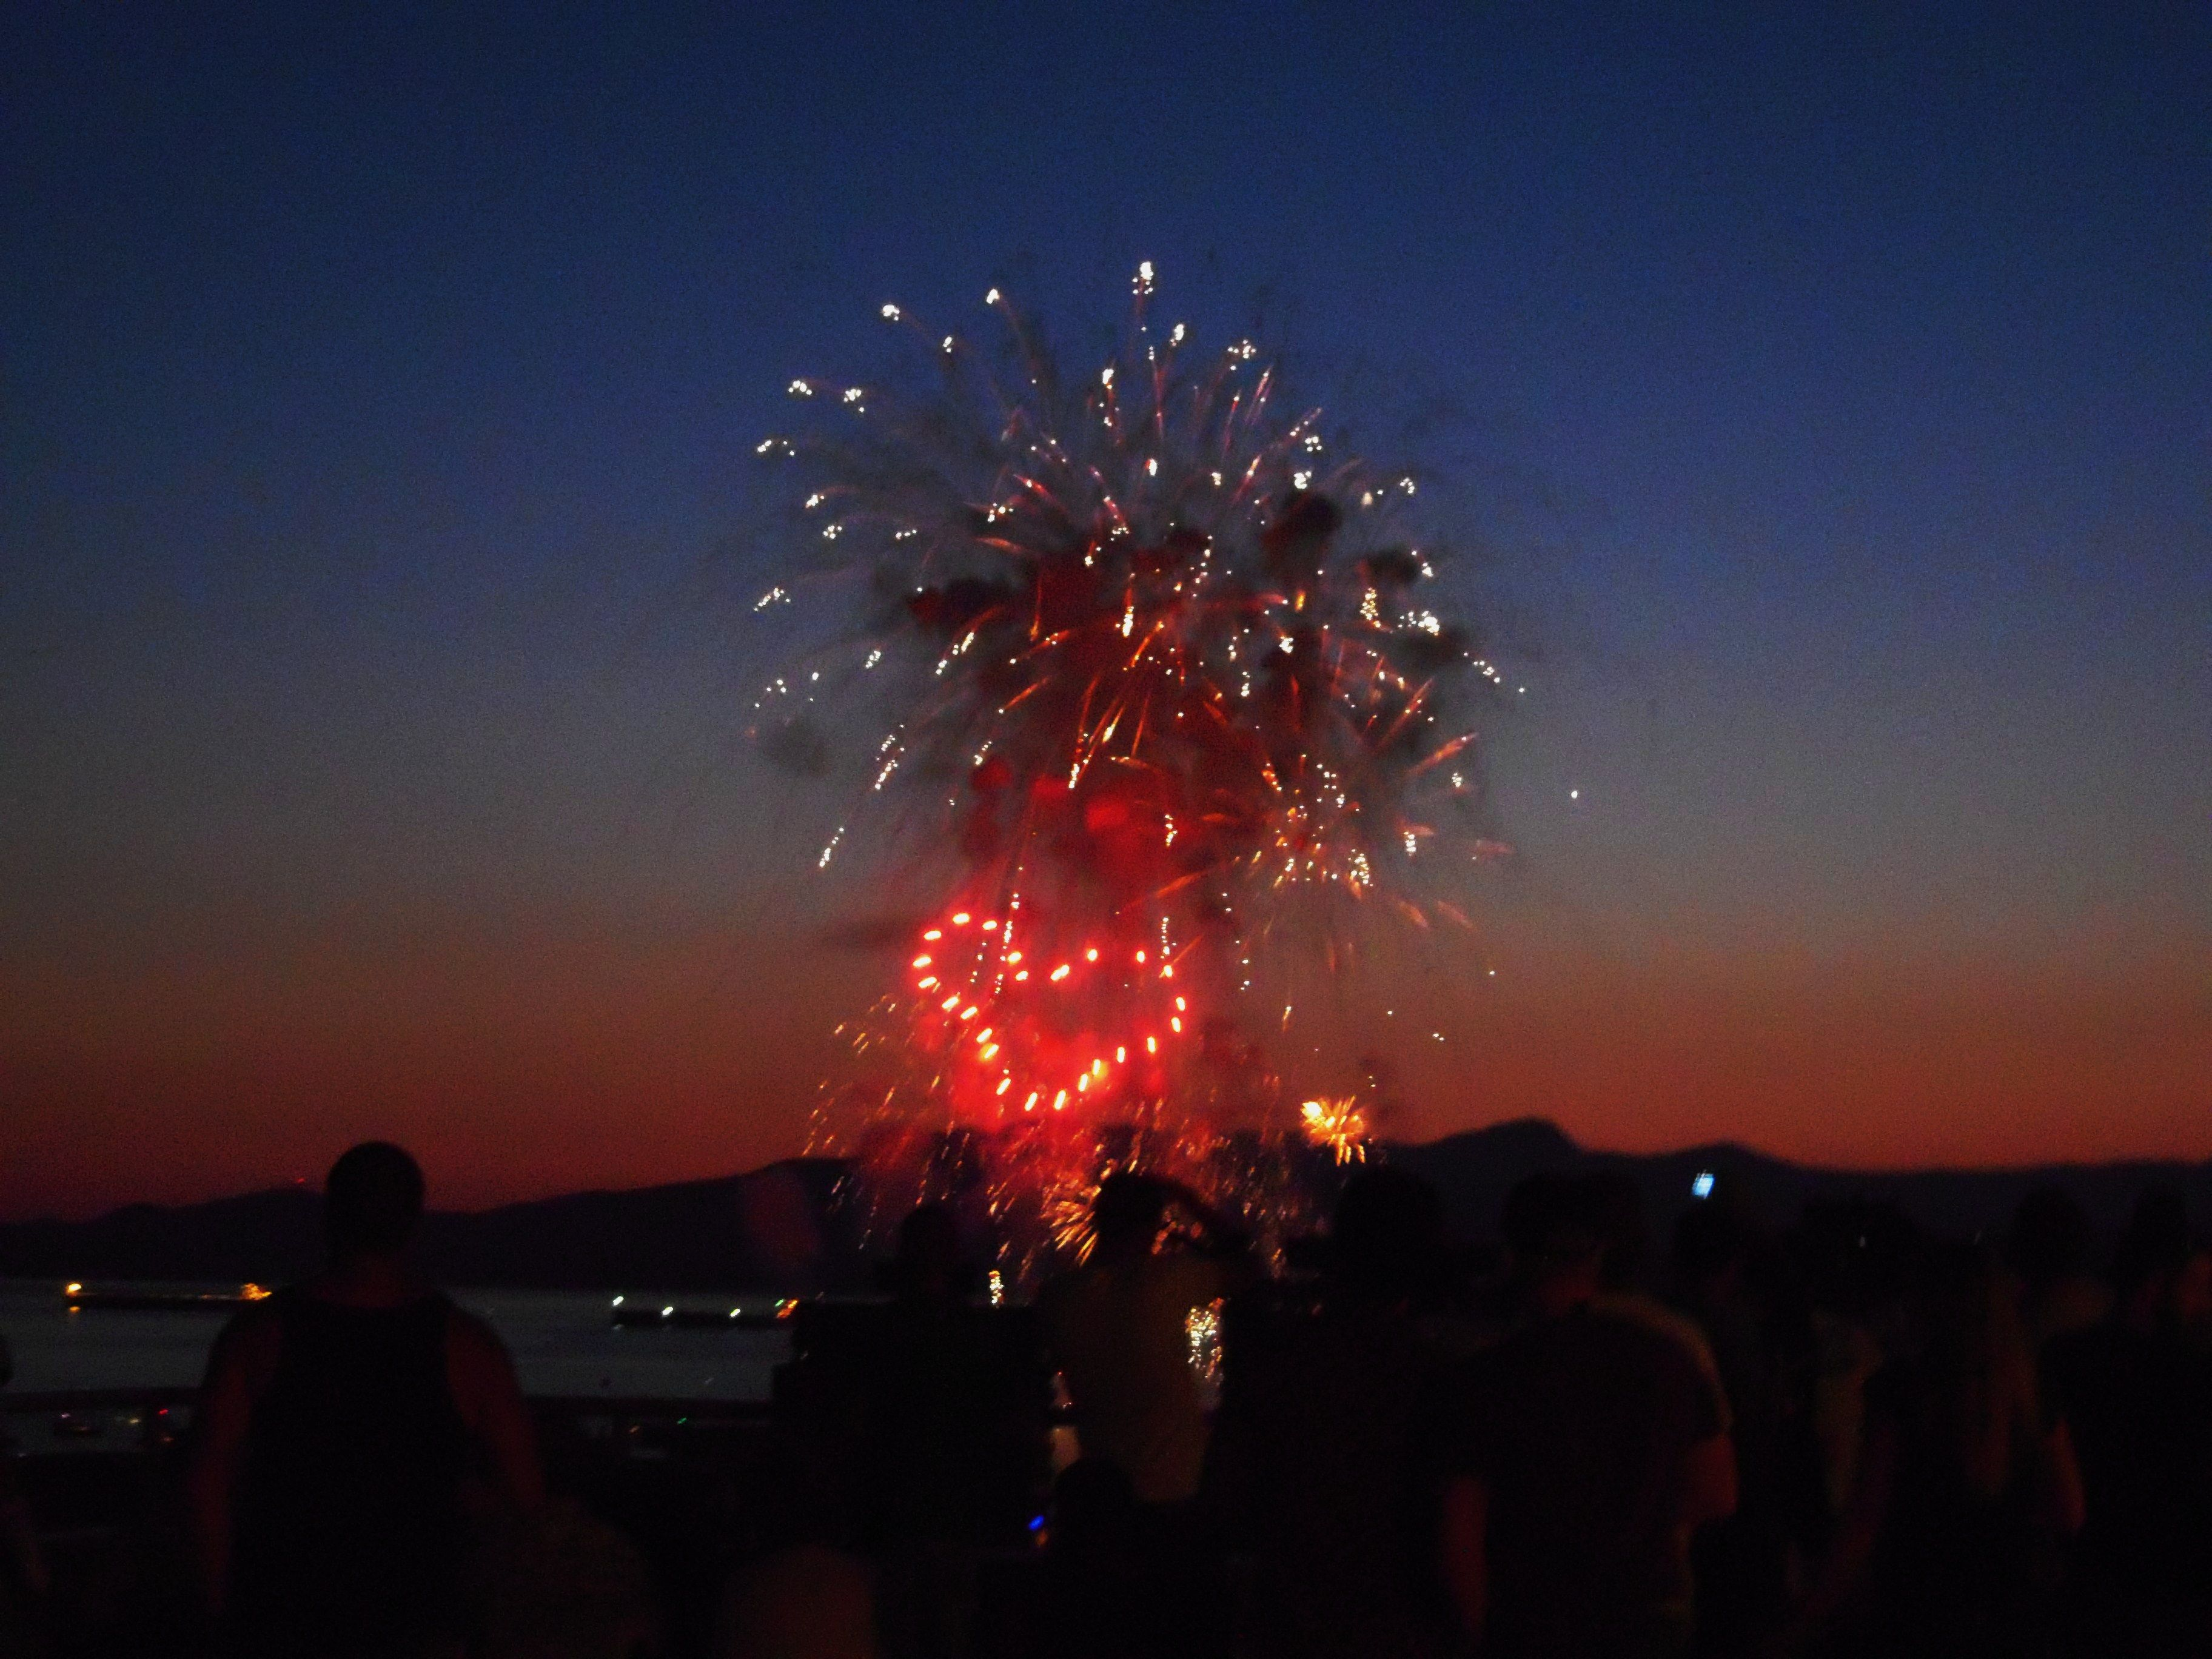 Vancouver, Canada (With images) | Fireworks, Holiday decor ...